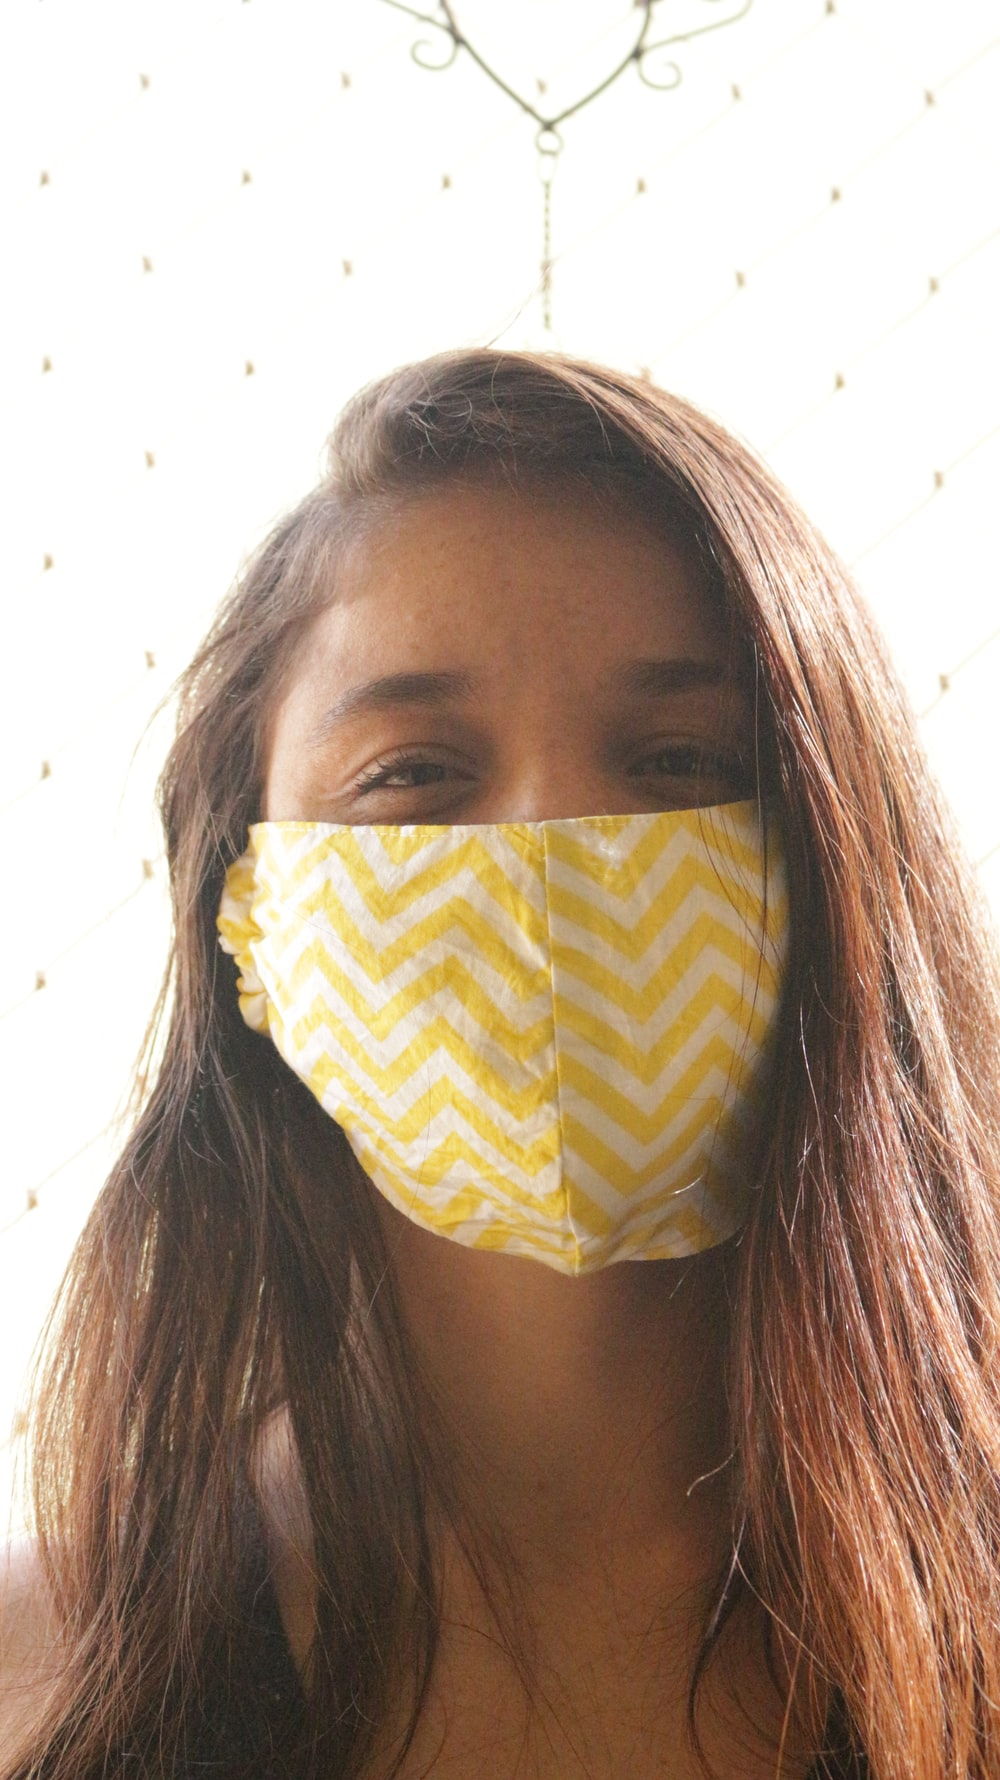 woman with yellow and white face mask